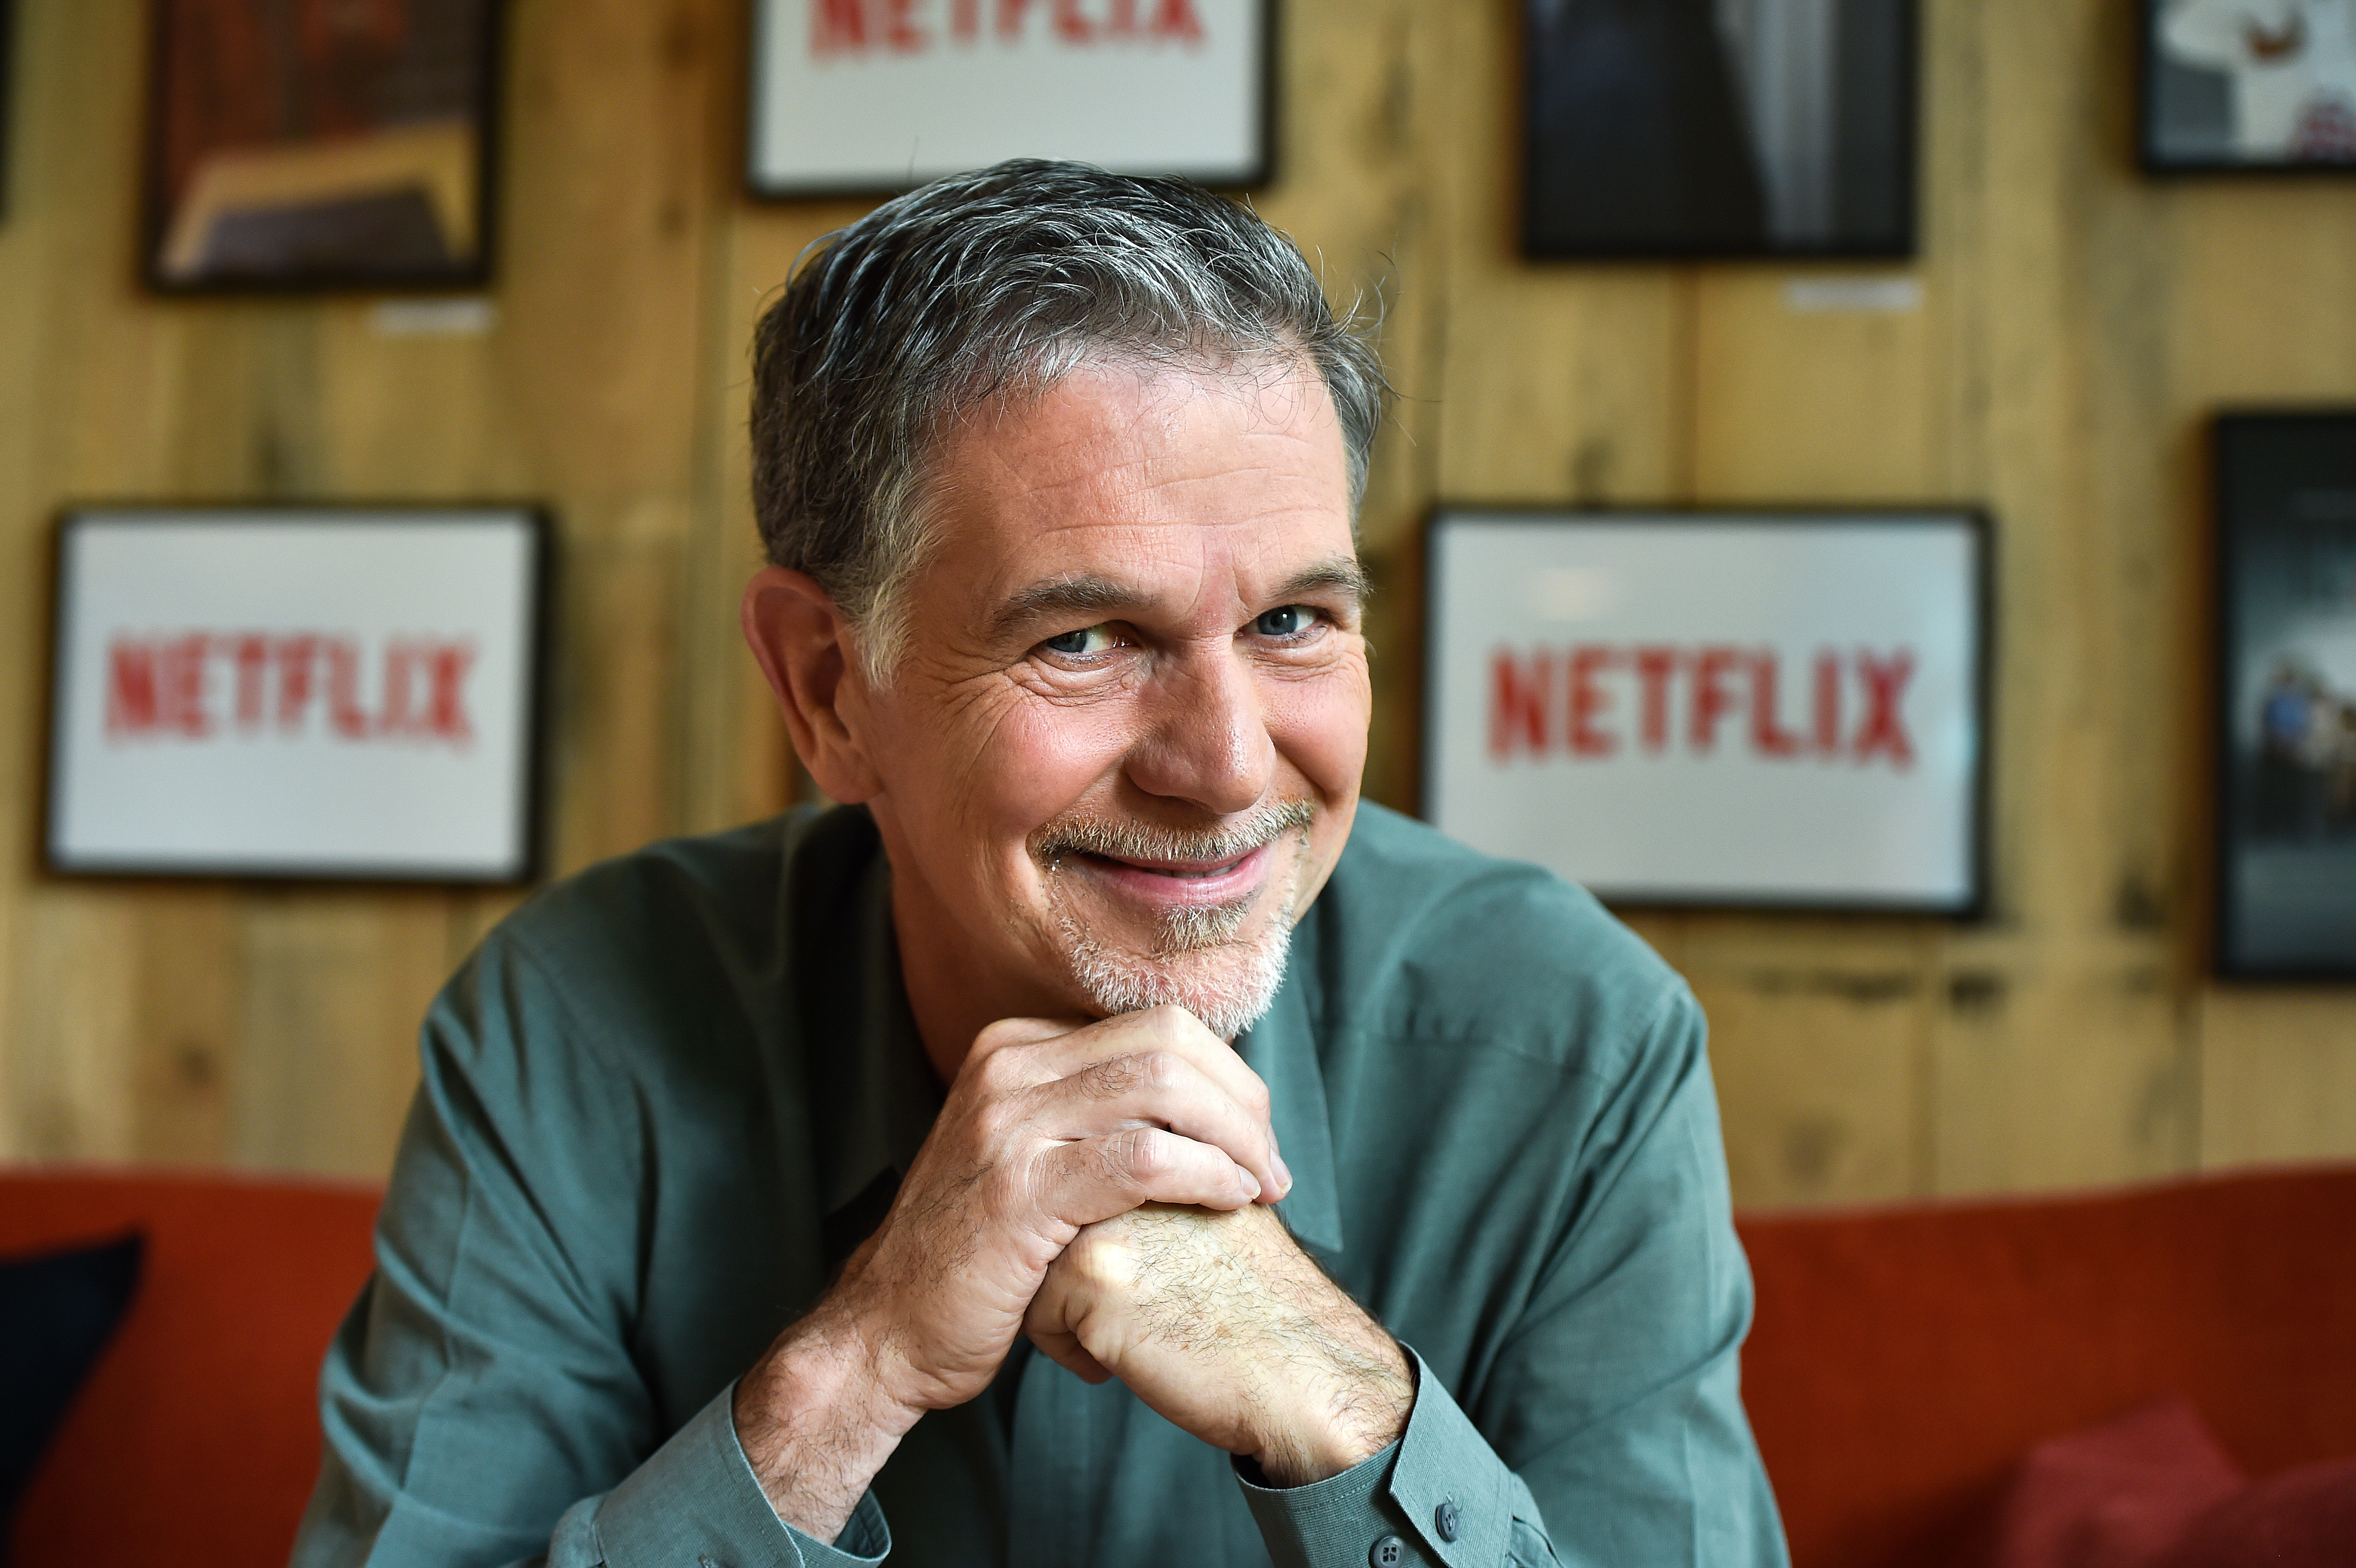 Online video store Netflix starts in Germany